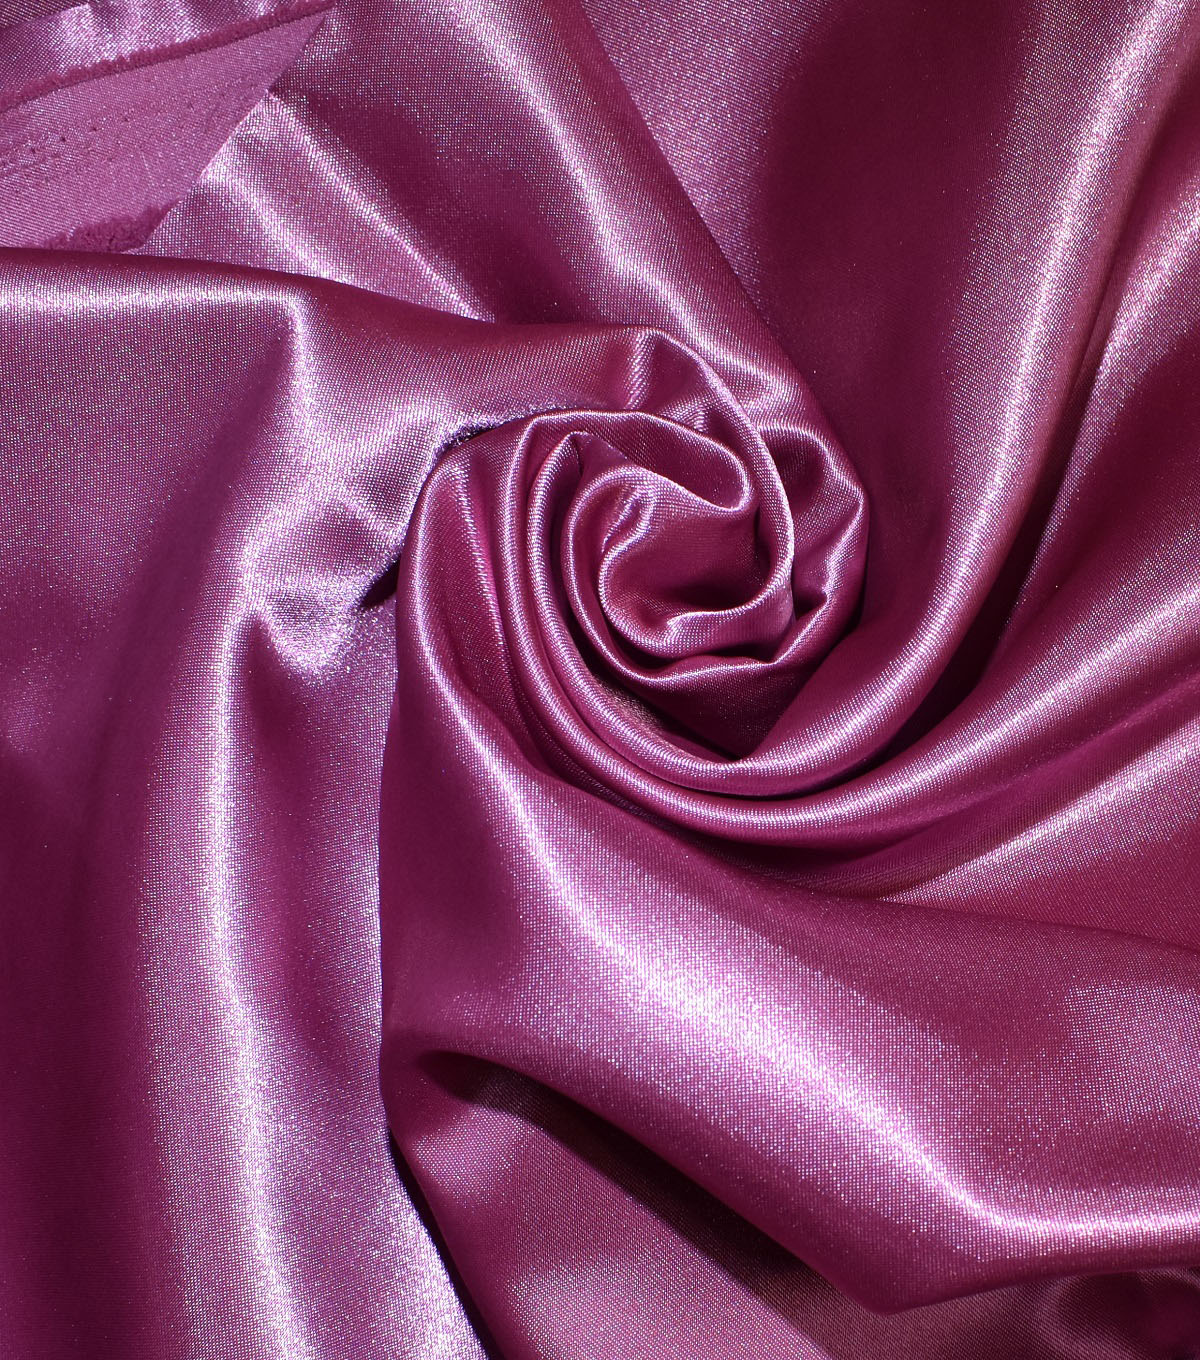 Casa Collection Shiny Satin Fabric, Heather Rose